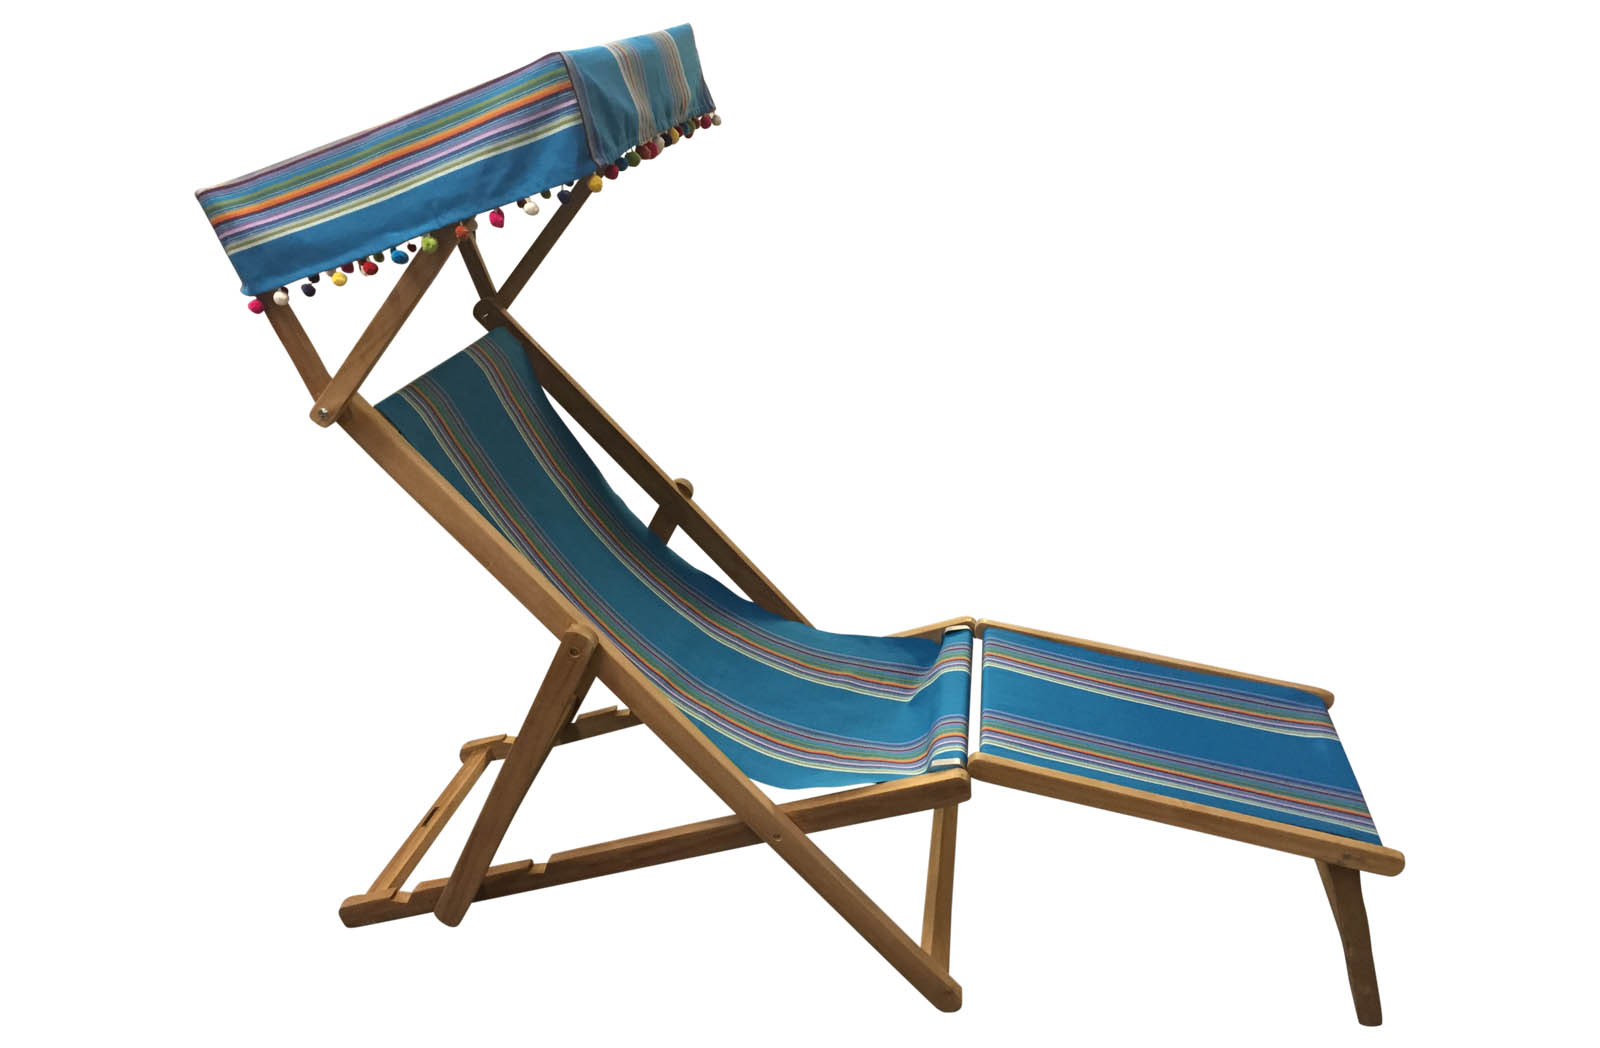 dark turquoise, rainbow- Edwardian Deckchairs with Canopy and Footstool